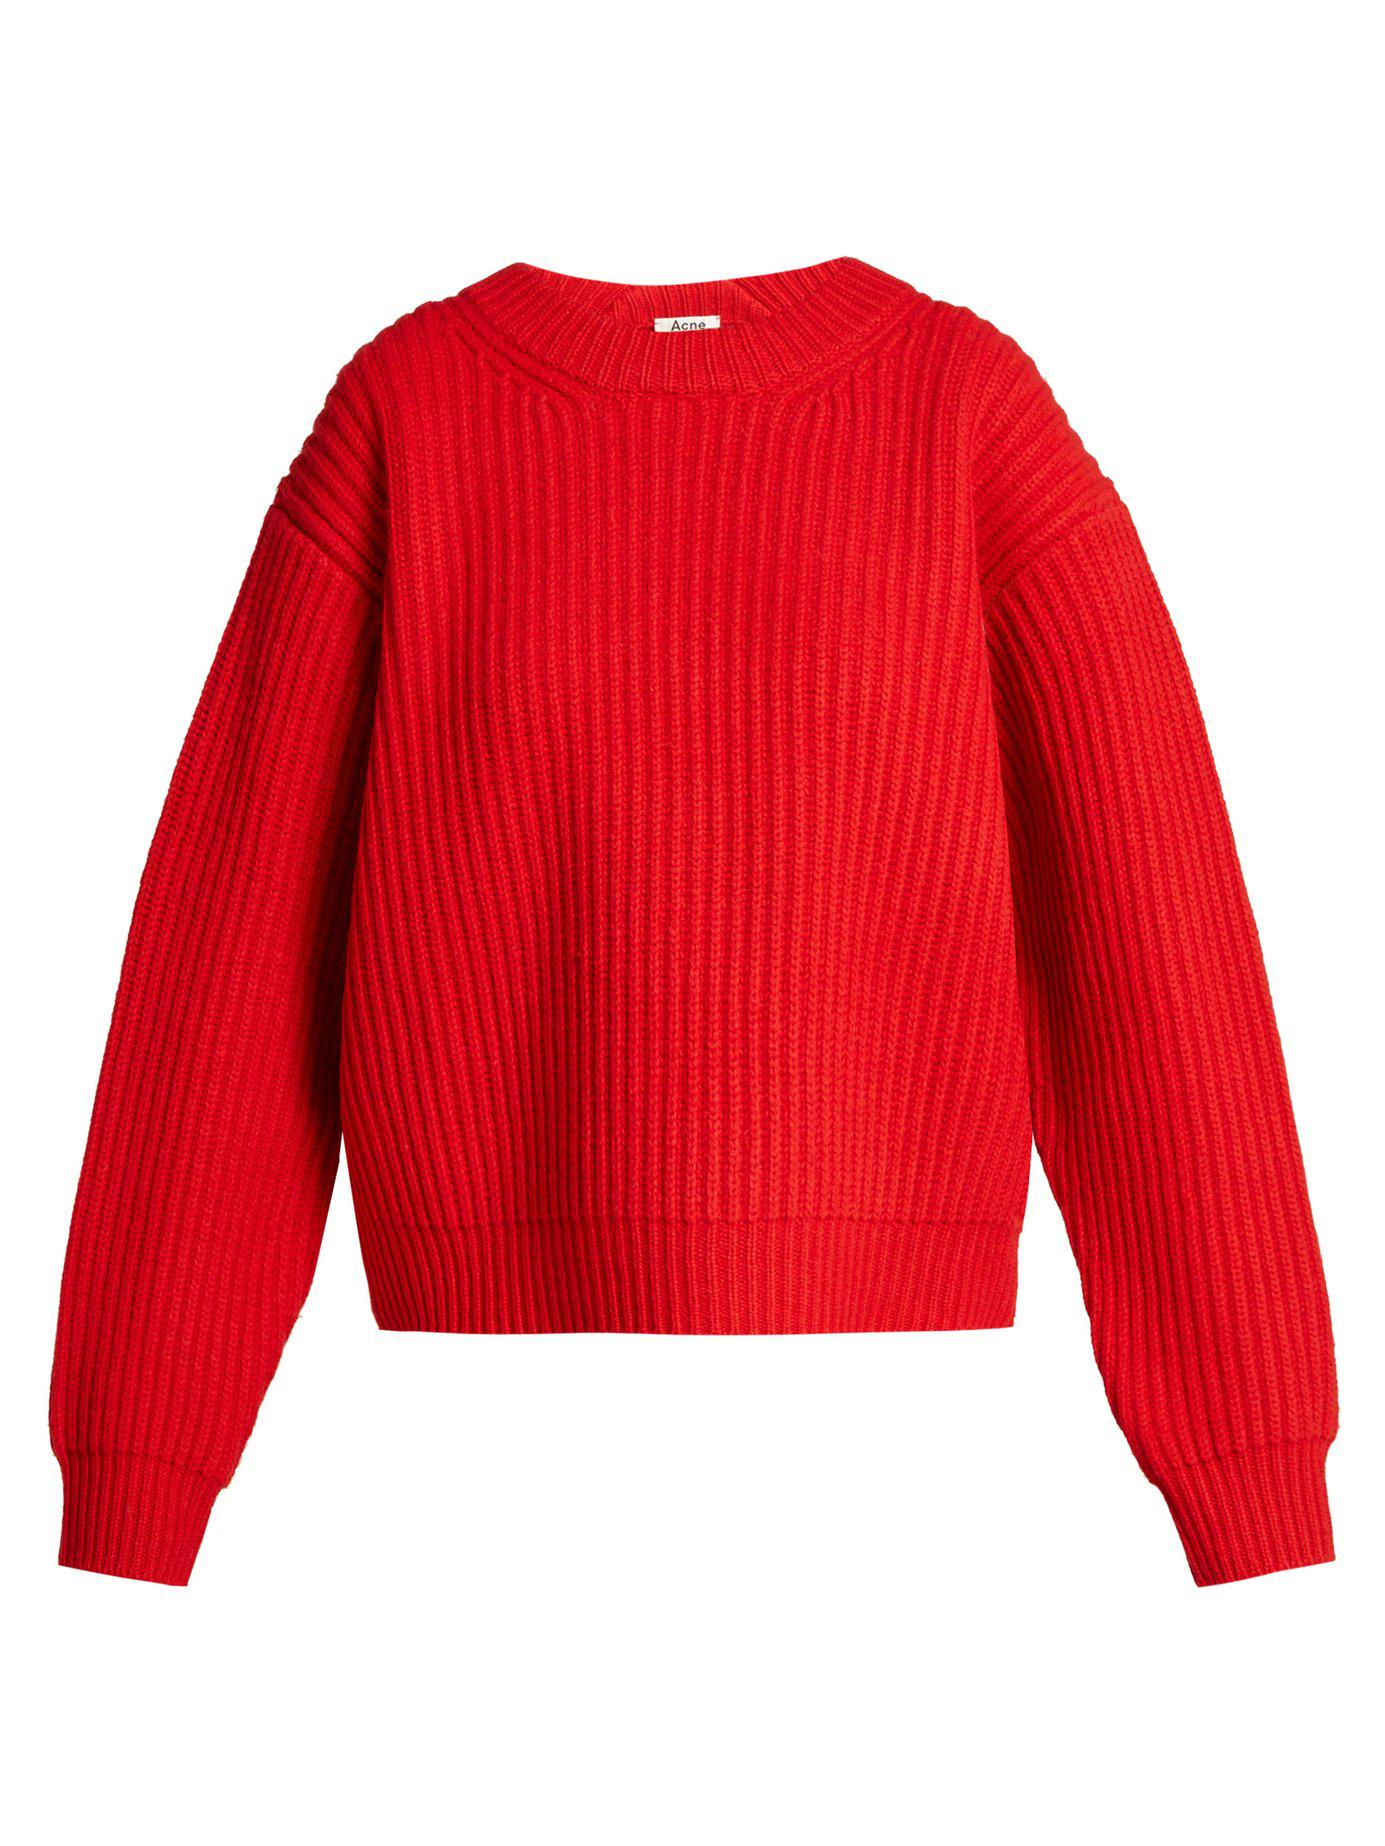 a0088a95d2bb Lyst - Acne Studios Oversized Wool Knit Sweater in Red